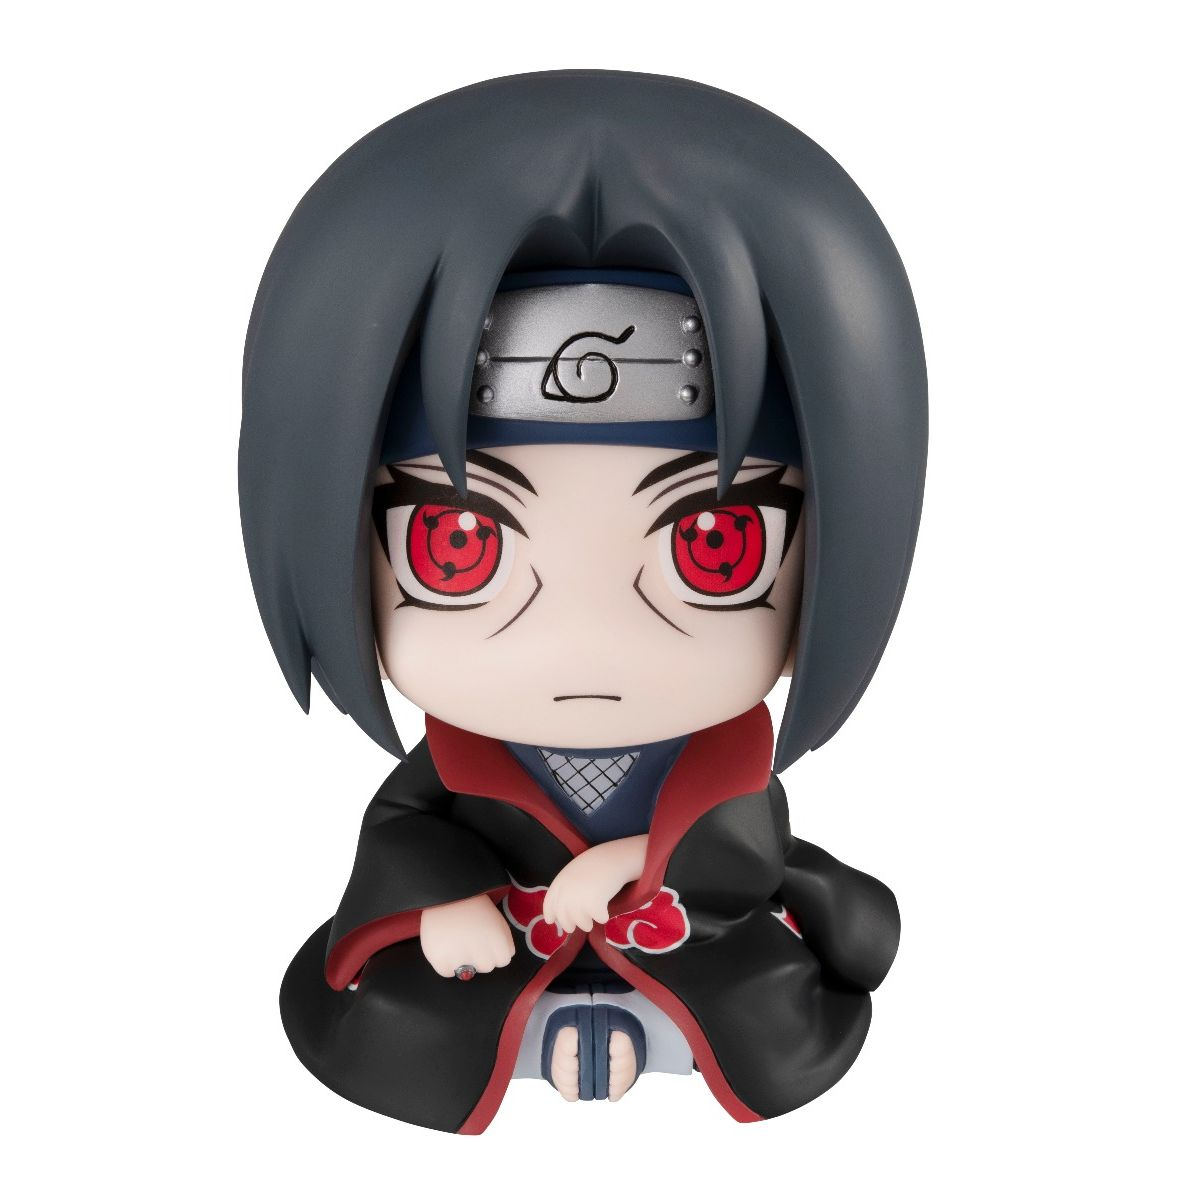 Megahouse Look Up Naruto Uchiha Itachi Pvc Figure Check out this fantastic collection of itachi uchiha wallpapers, with 61 itachi uchiha background images for your desktop, phone or tablet. megahouse look up naruto uchiha itachi pvc figure